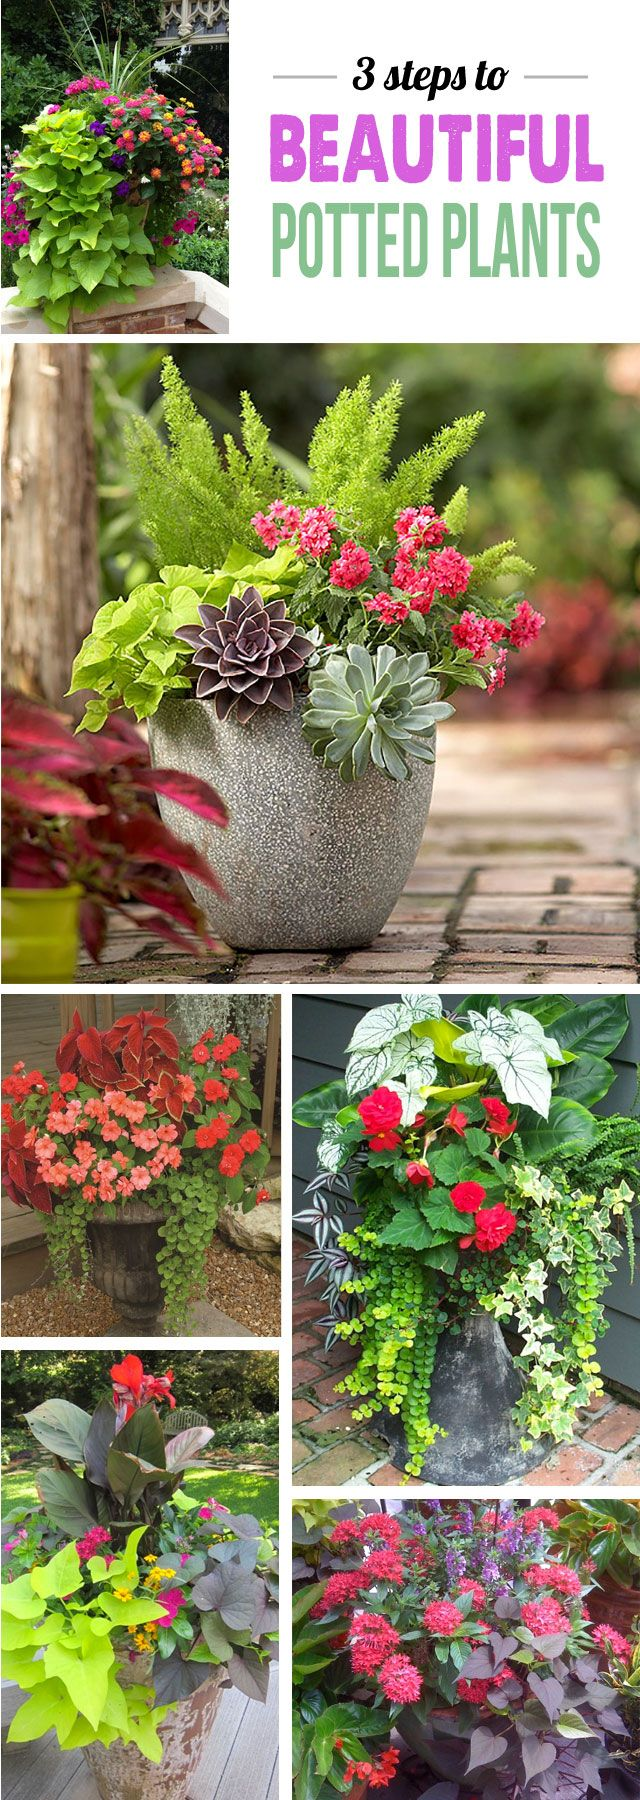 Are you guys' big planters? I have to admit, I never really thought about planting until we moved into our forever home. Now when spring rolls around, I just can't wait to start adding bold, beautiful colors to the yard via a few artfully designed pots. In the past my mother-in-law has graciously done my …